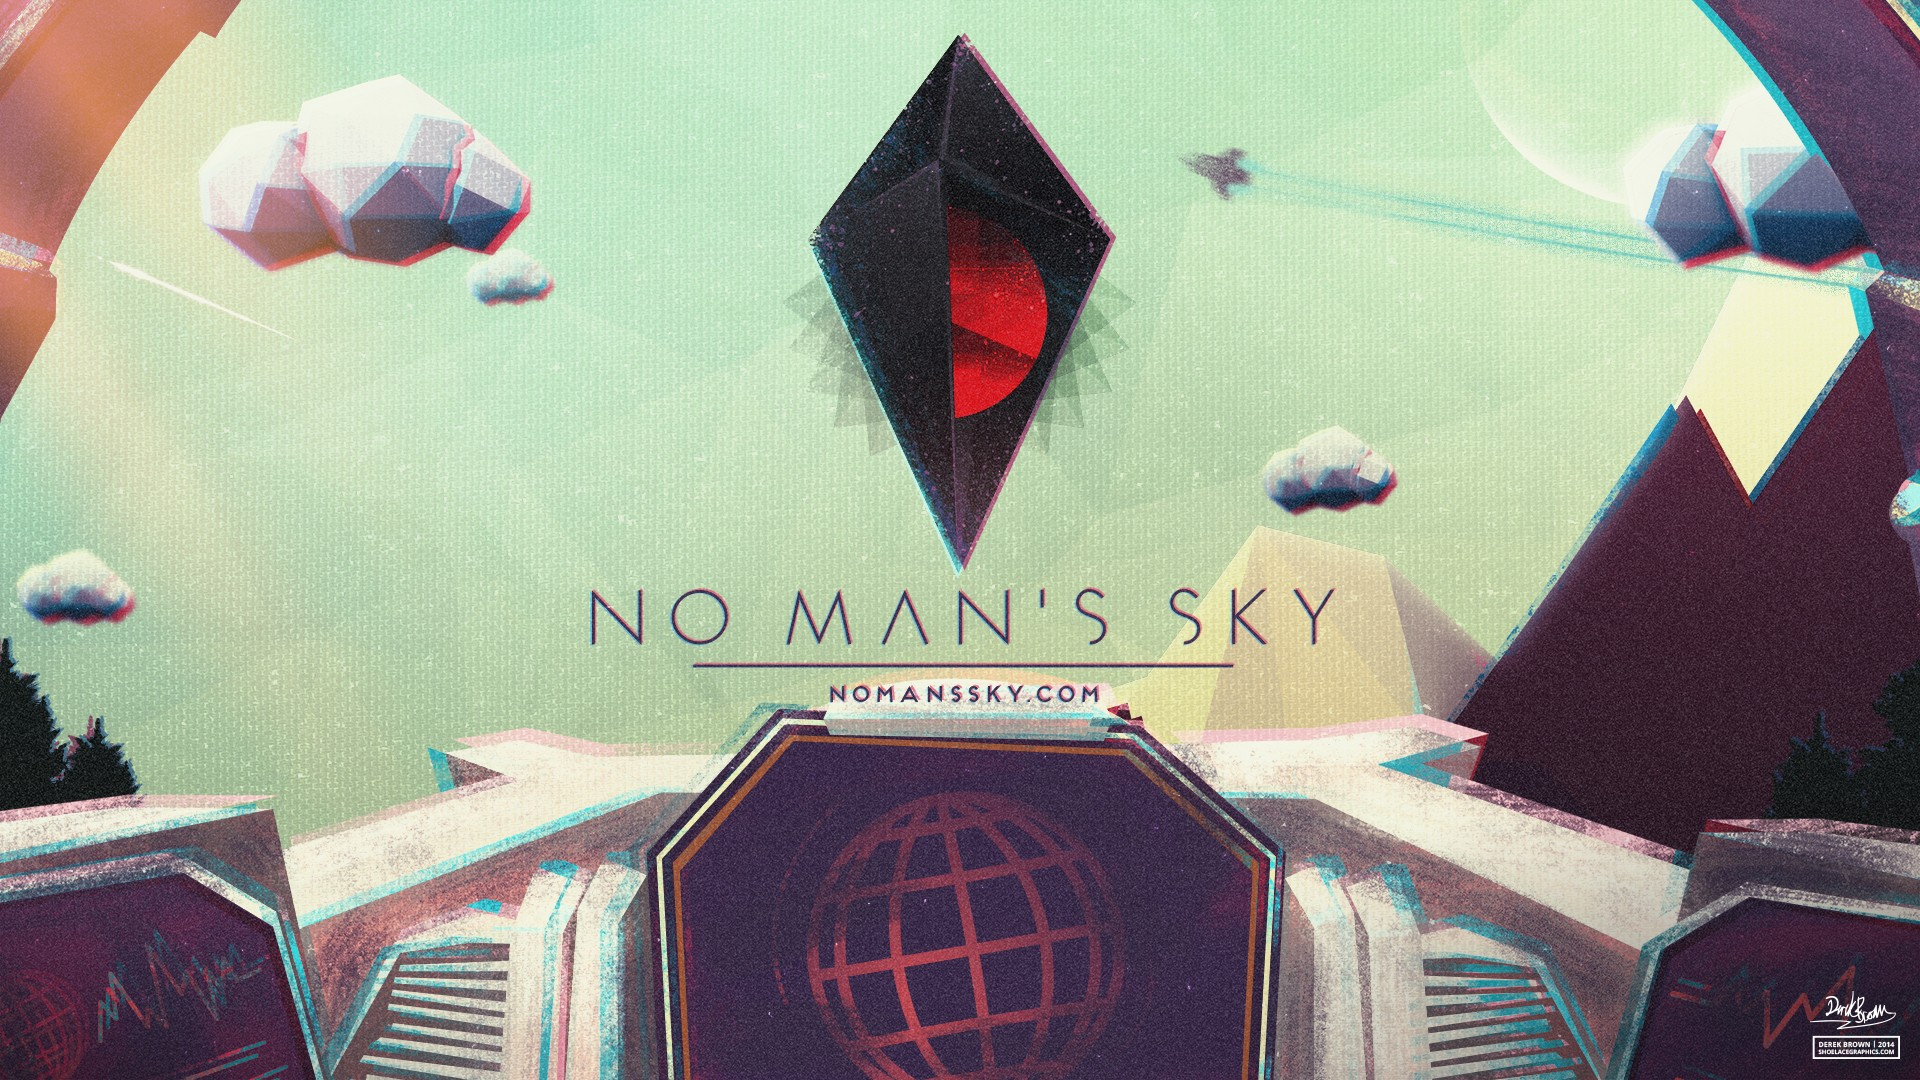 50 Love Wallpaper Hd Full Size For Mobile And Laptop: No Man's Sky Full HD Wallpaper 1920x1080